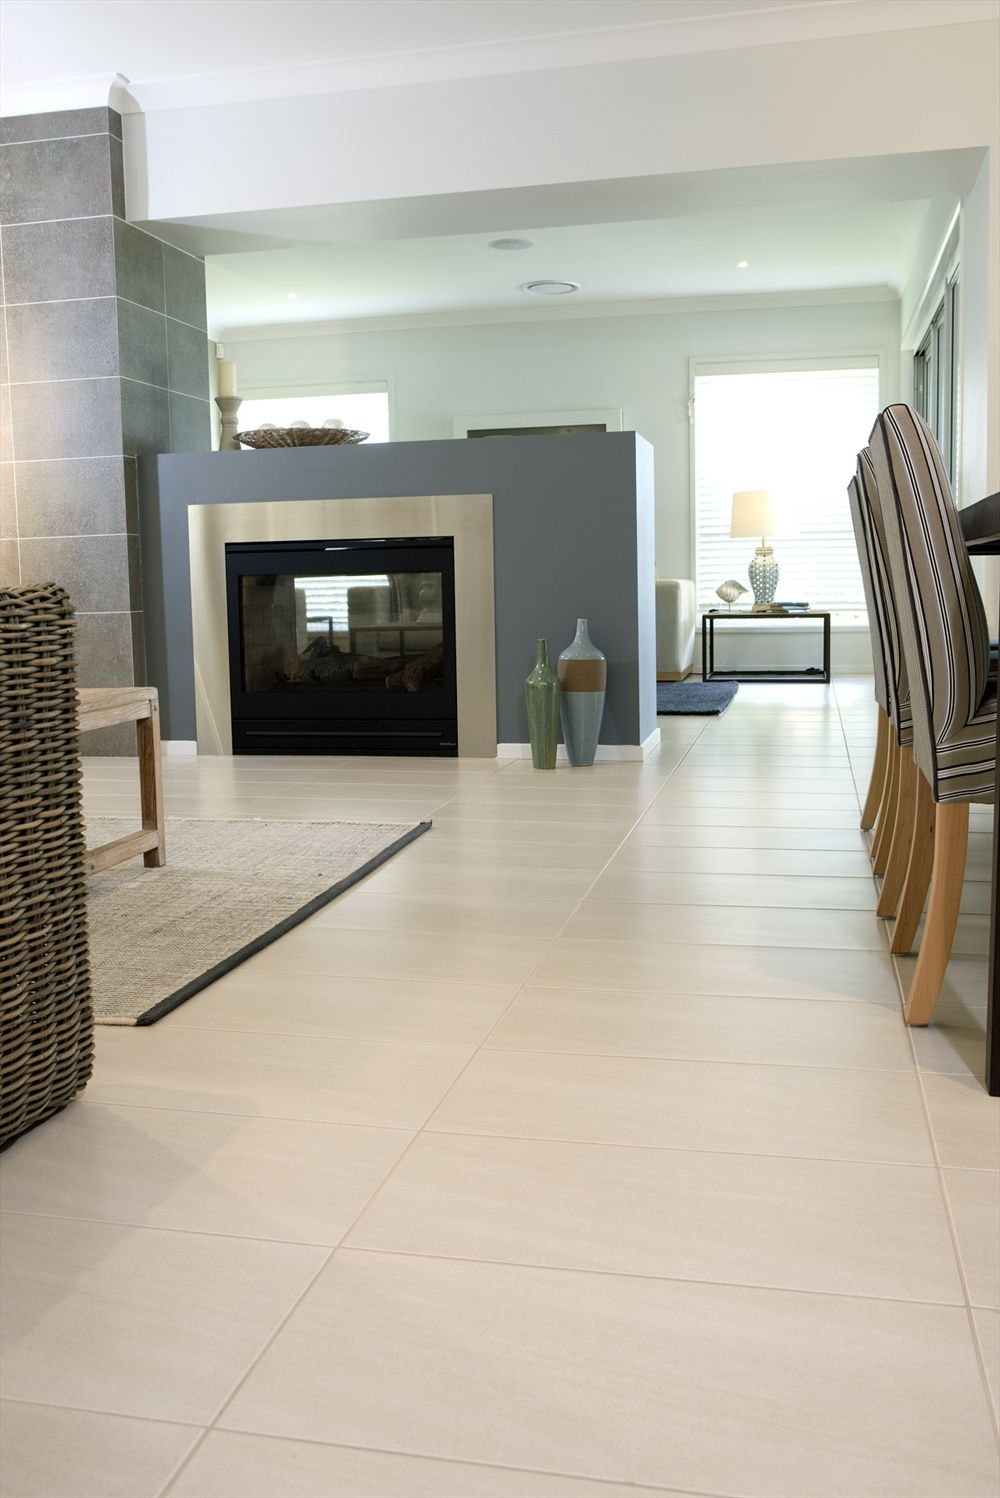 Best Kitchen Gallery: What Do You Think Of This Living Rooms Tile Idea I Got From Beaumont of Living Room Floor  on rachelxblog.com